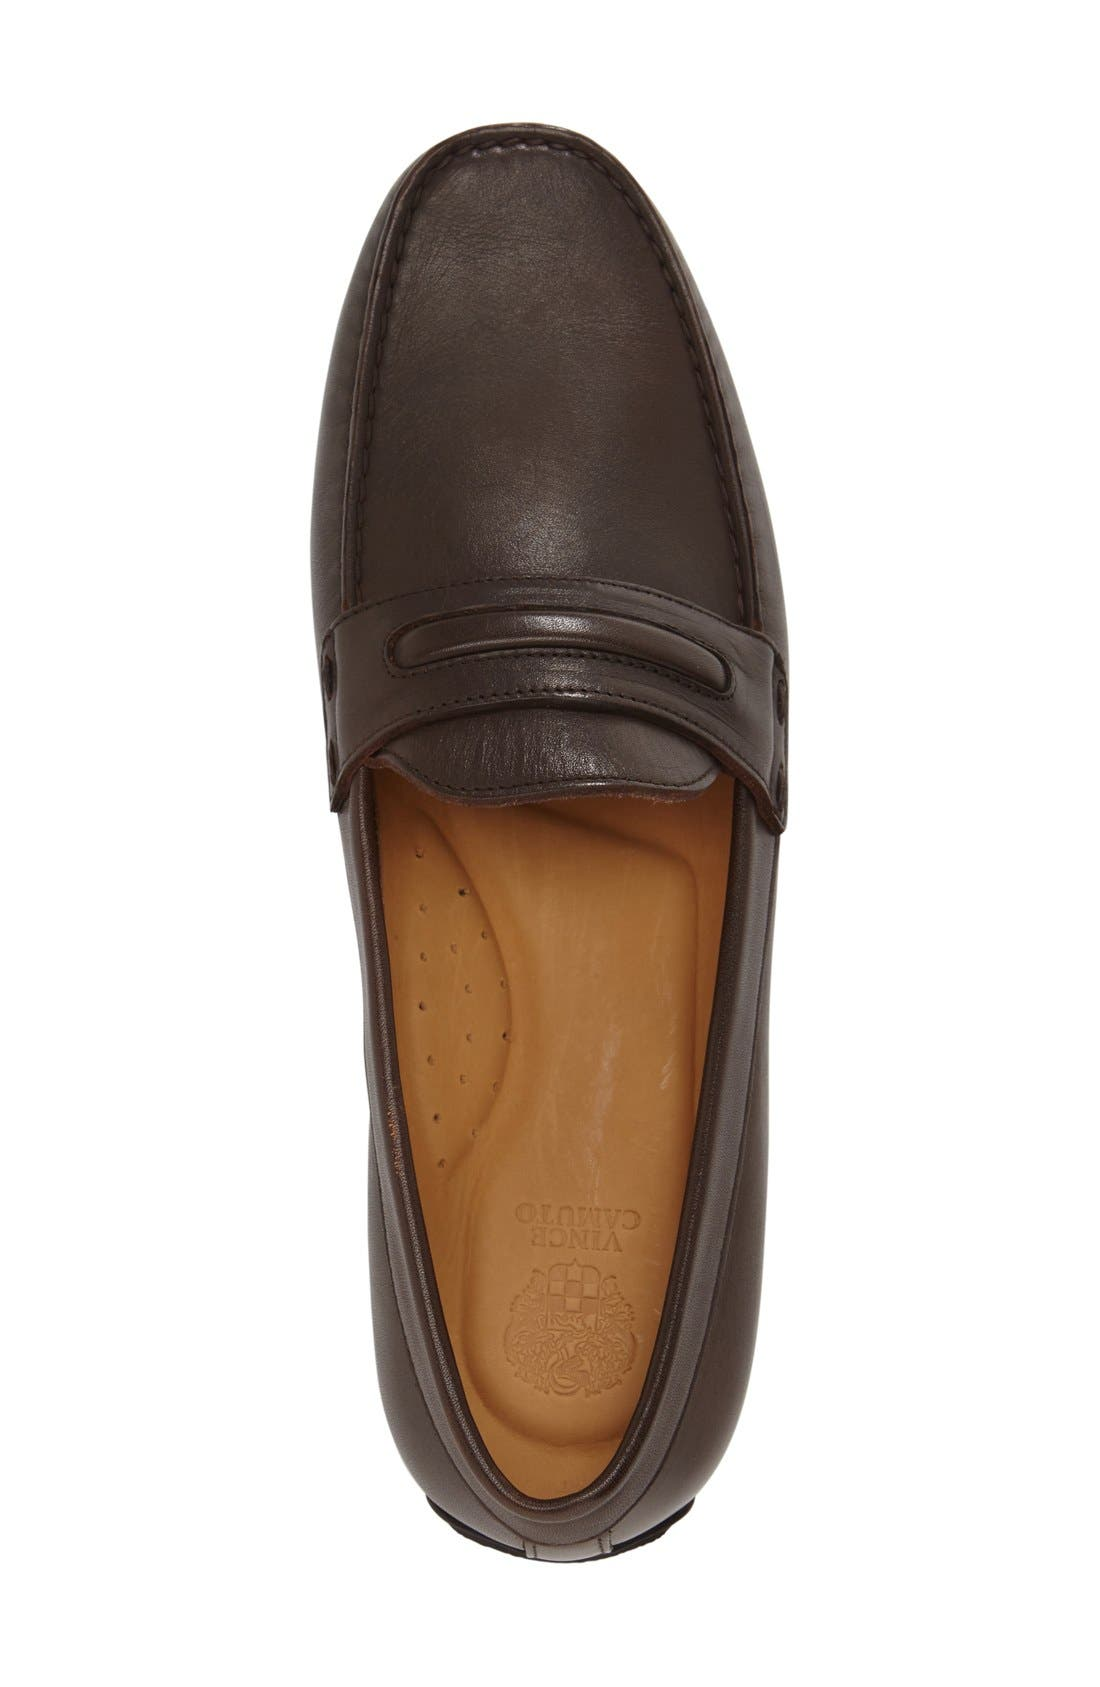 'Donte' Driving Shoe,                             Alternate thumbnail 3, color,                             Espresso Leather